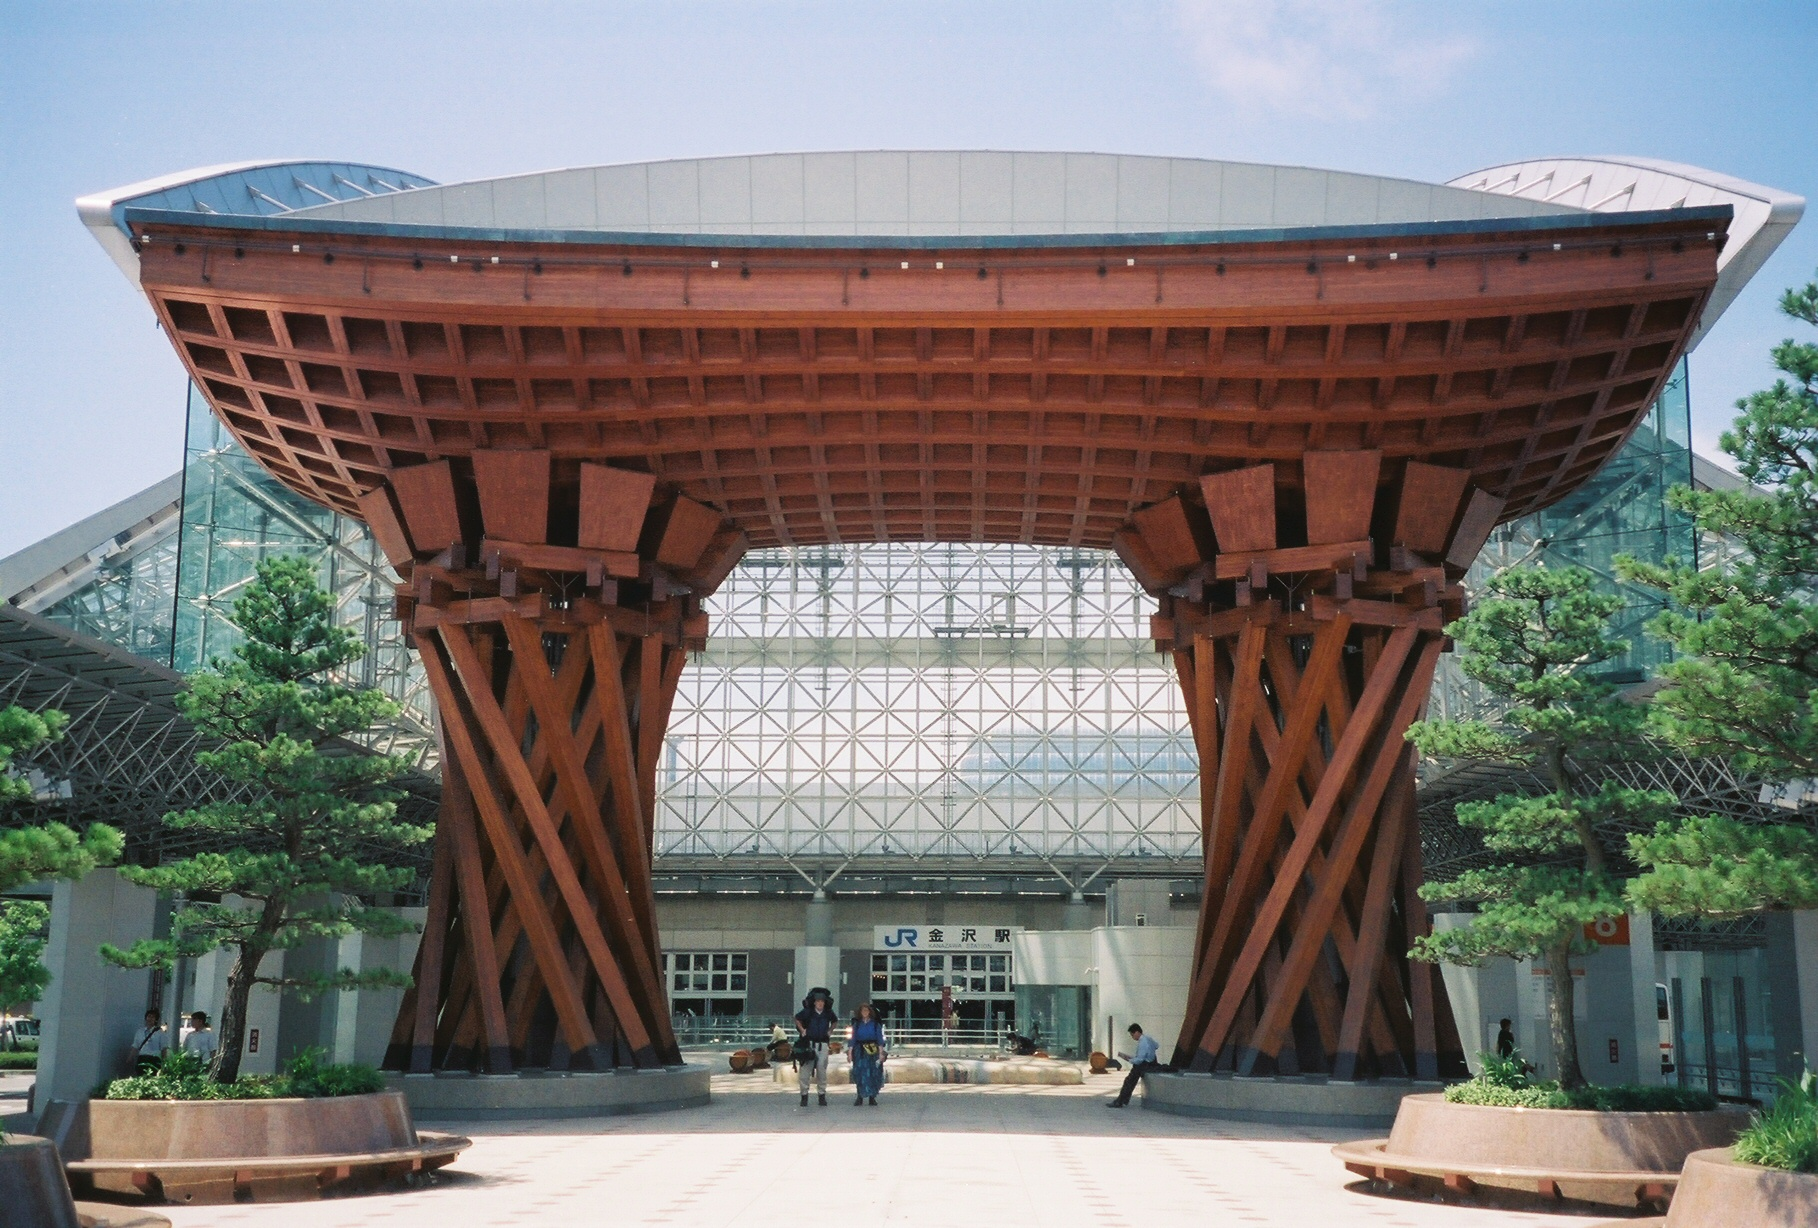 http://upload.wikimedia.org/wikipedia/commons/4/4a/Estacion_Kanazawa_Japon.jpg